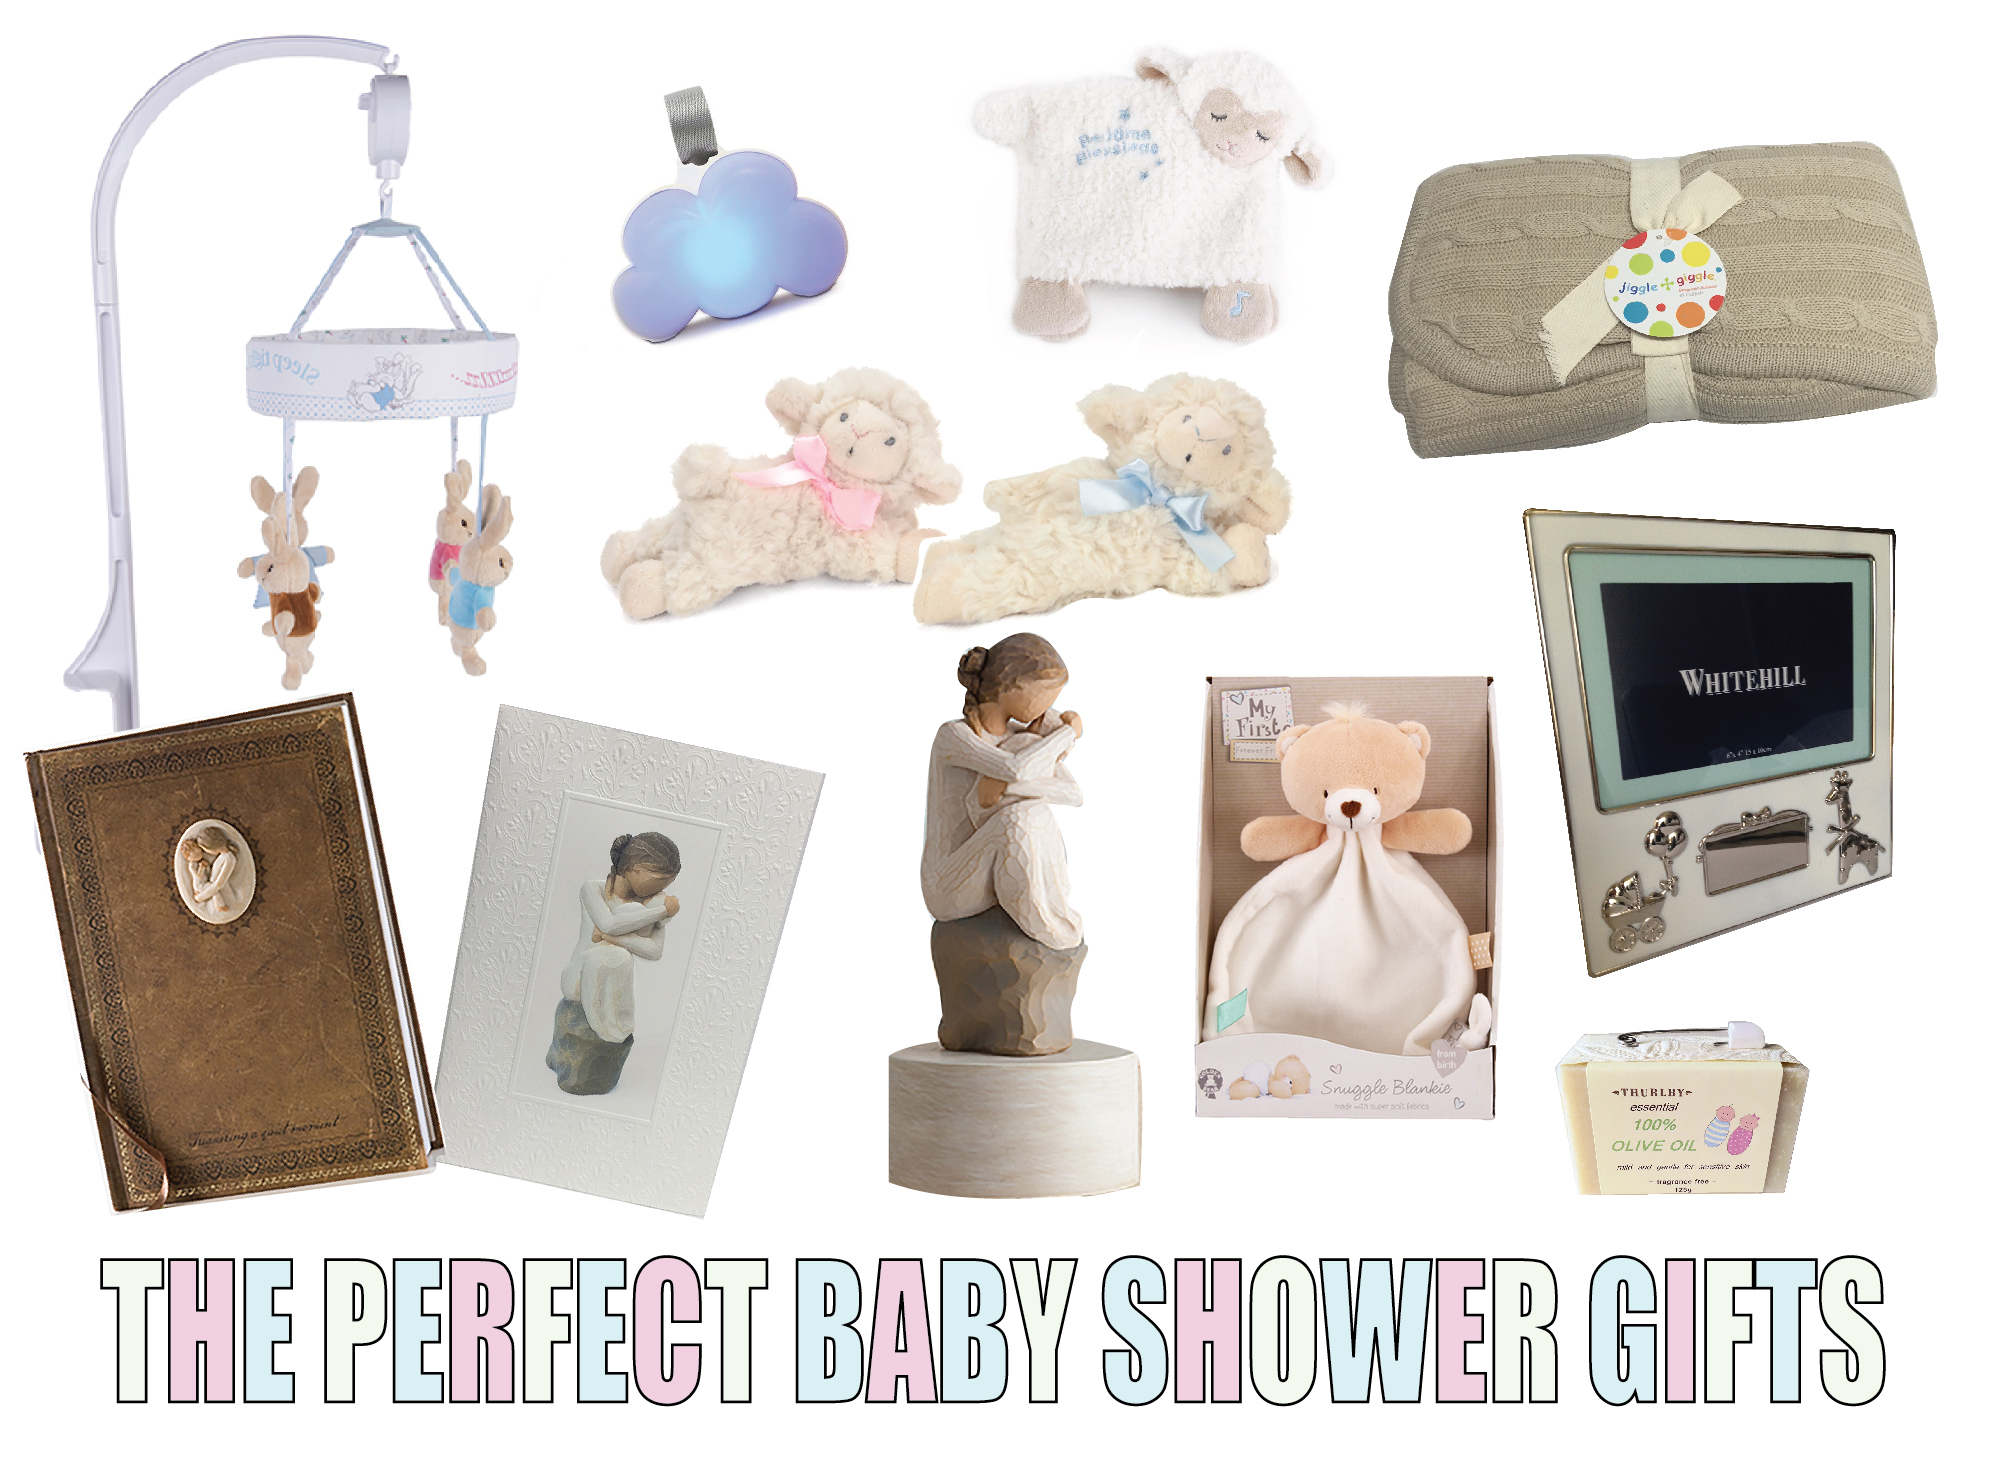 perfect-baby-shower-gifts-insta-01.jpg